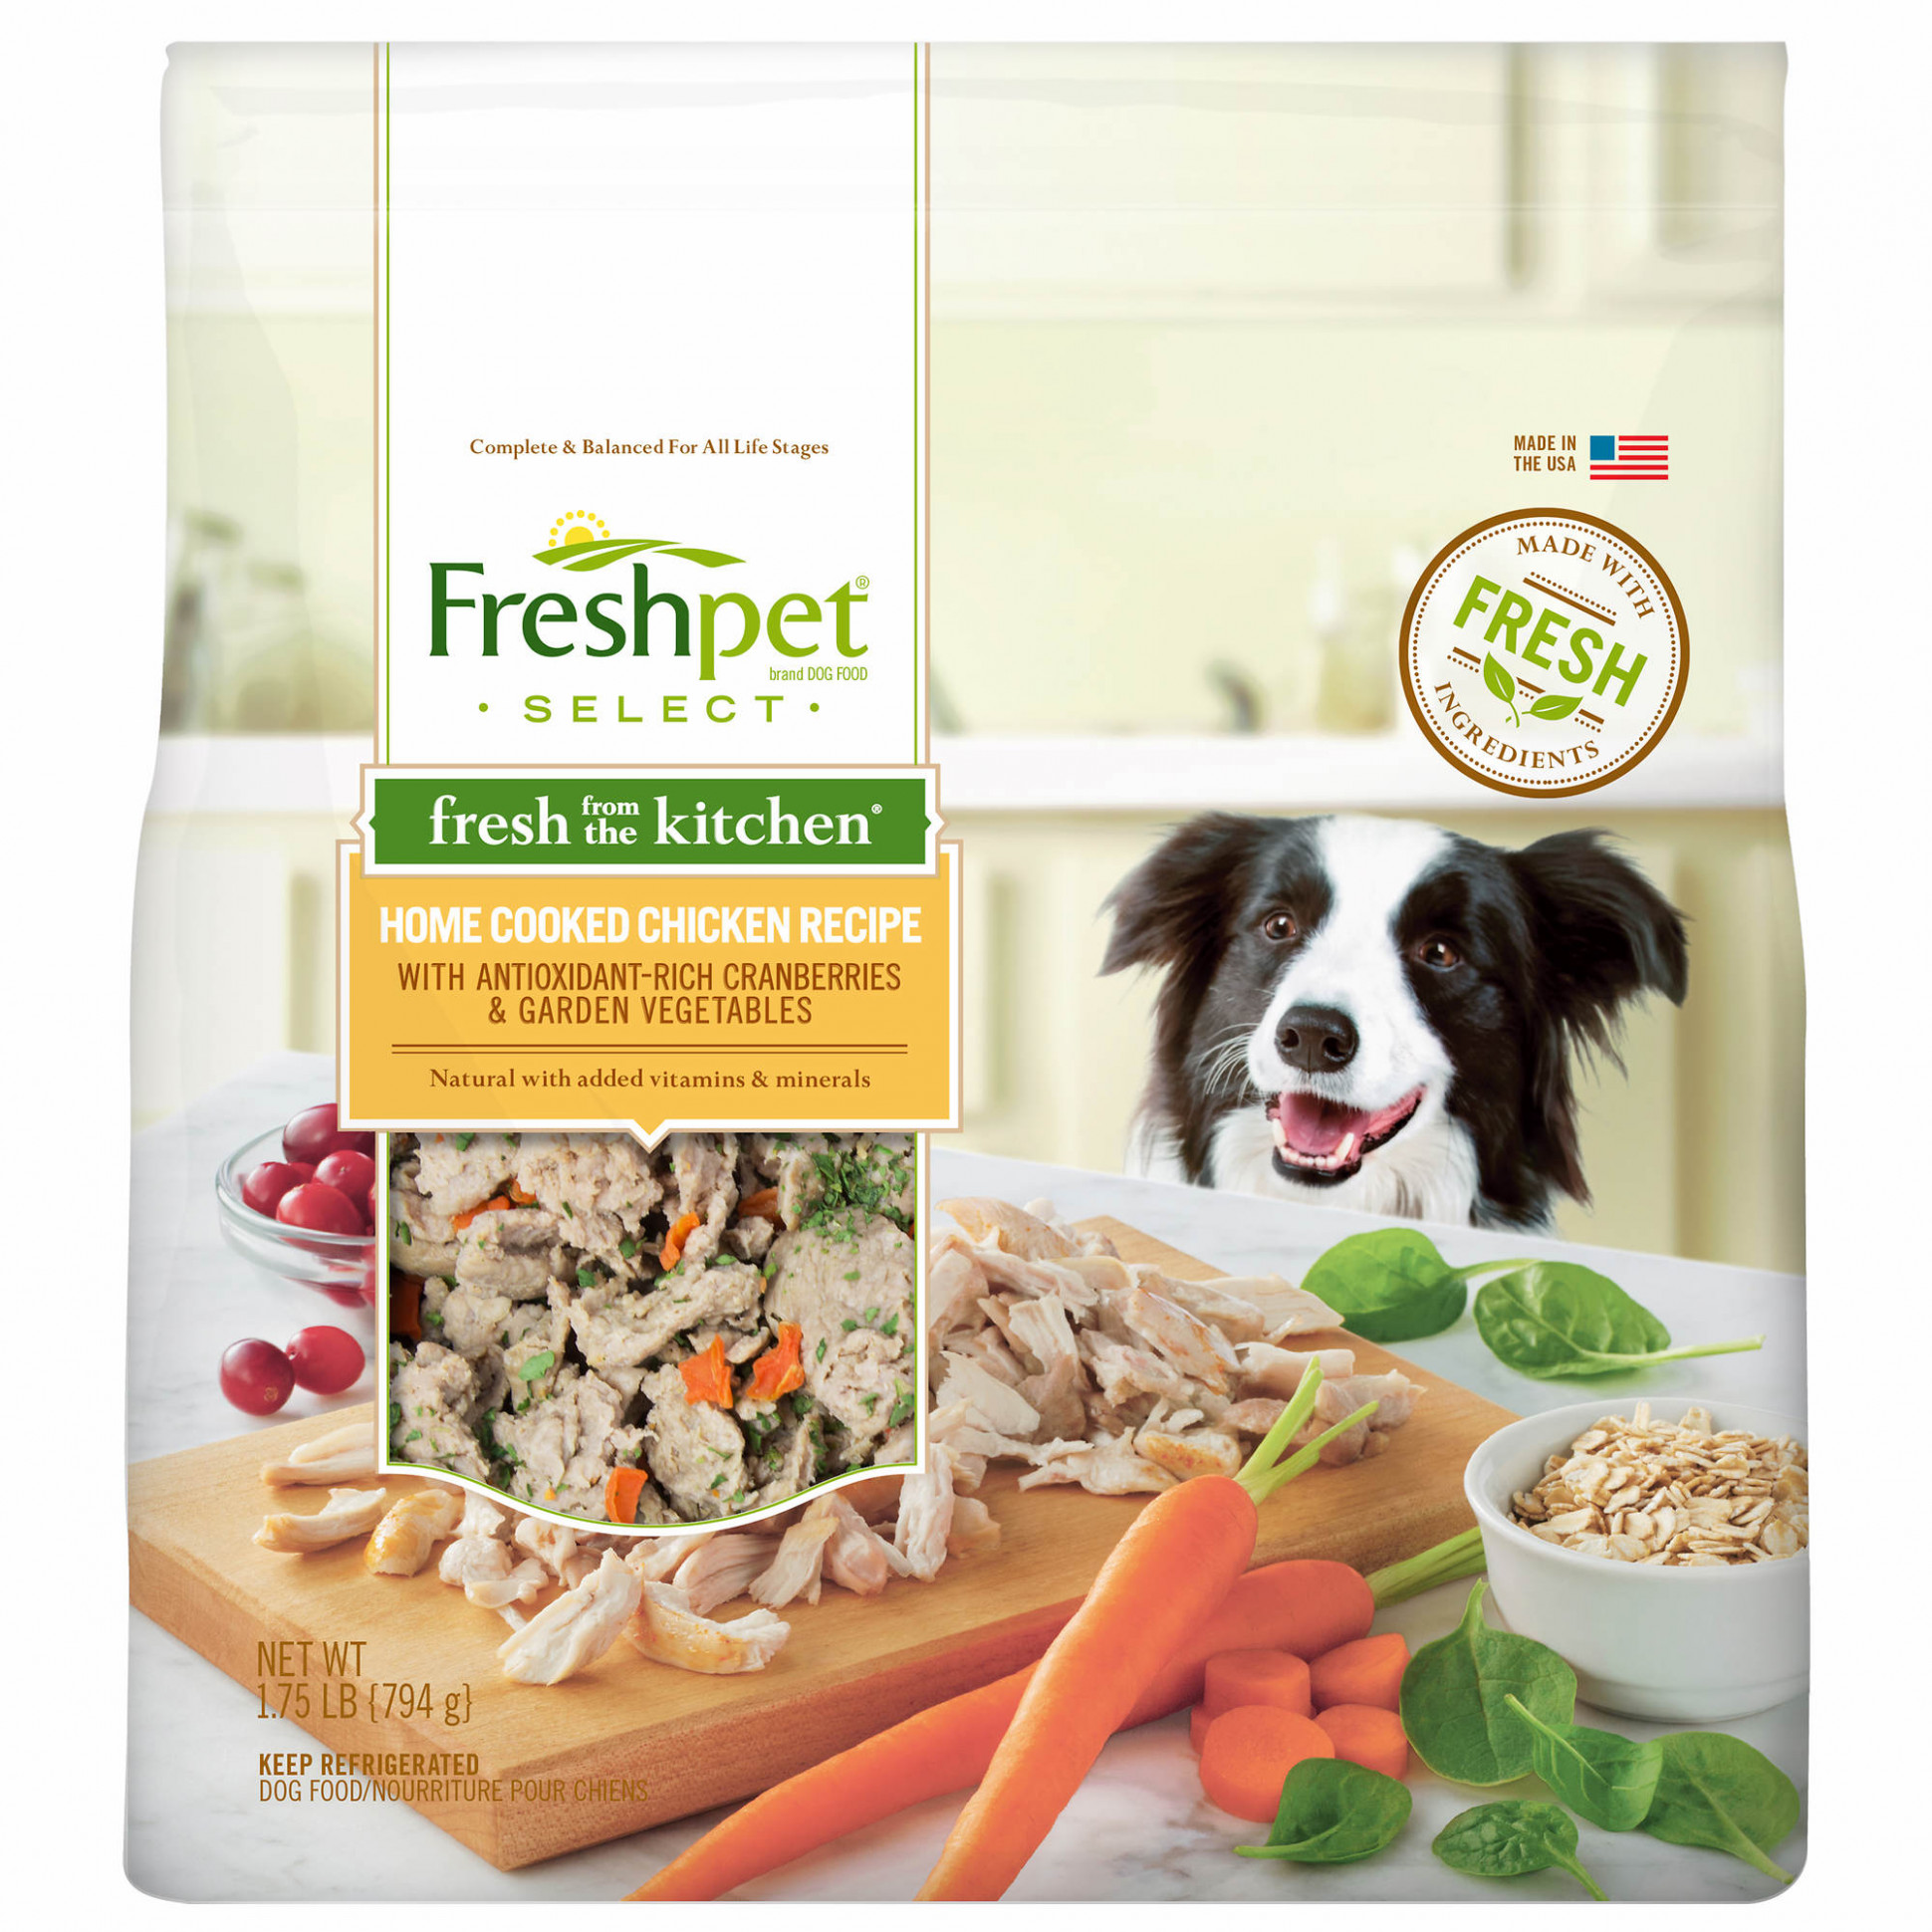 Freshpet Select Fresh from the Kitchen Home-Cooked Chicken ..